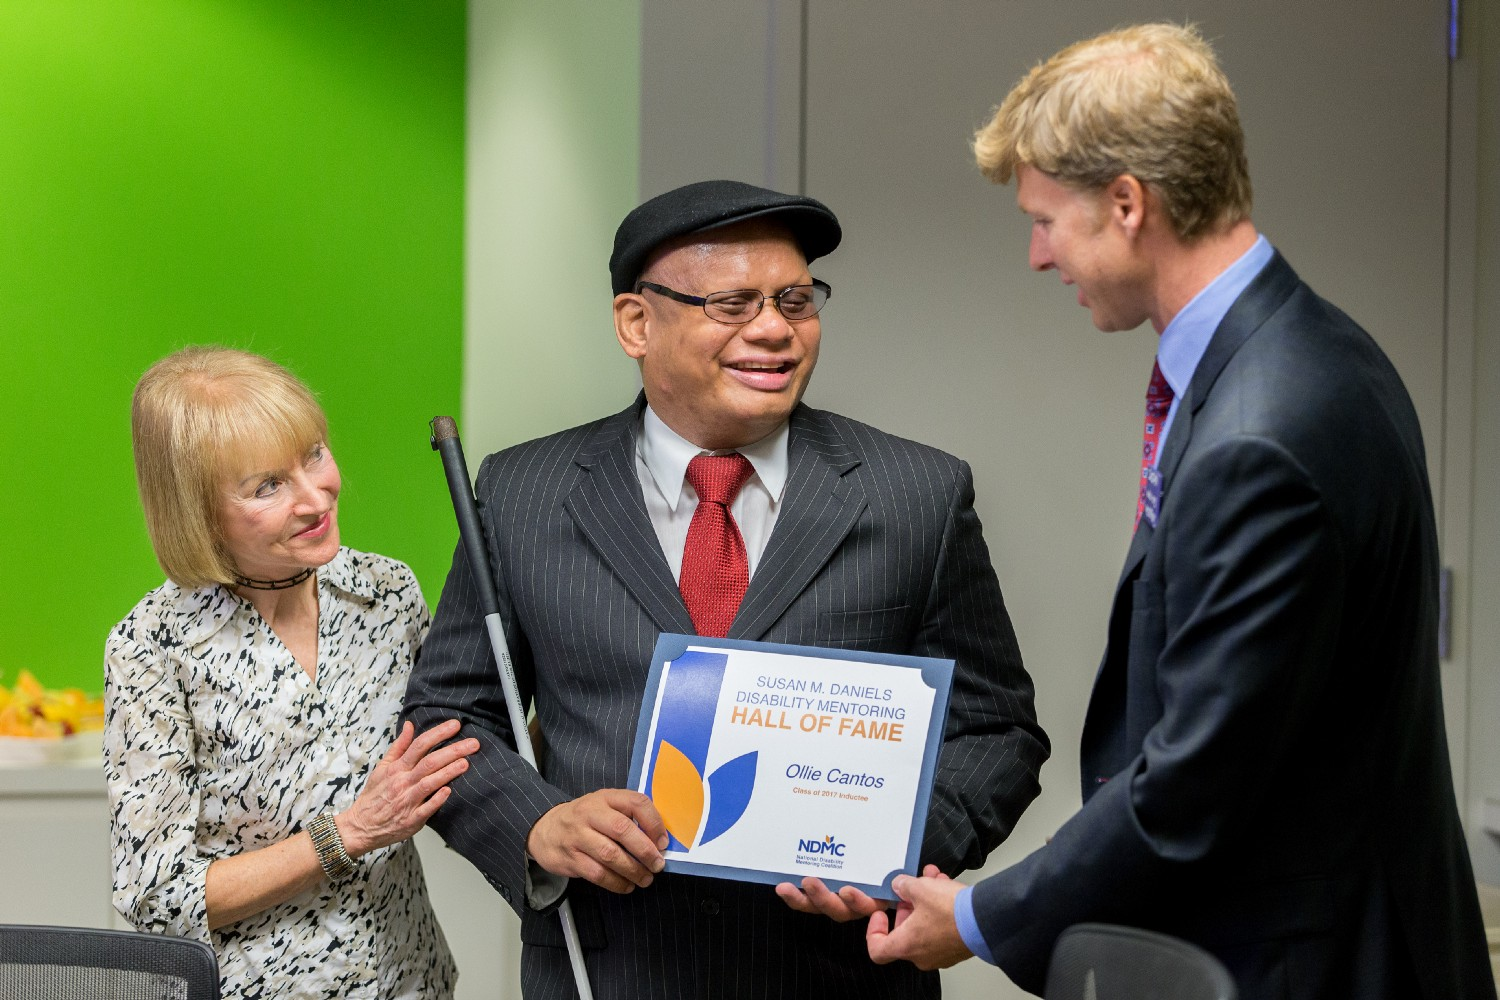 Ollie Cantos accepts his induction into the Disability Mentoring Hall of Fame